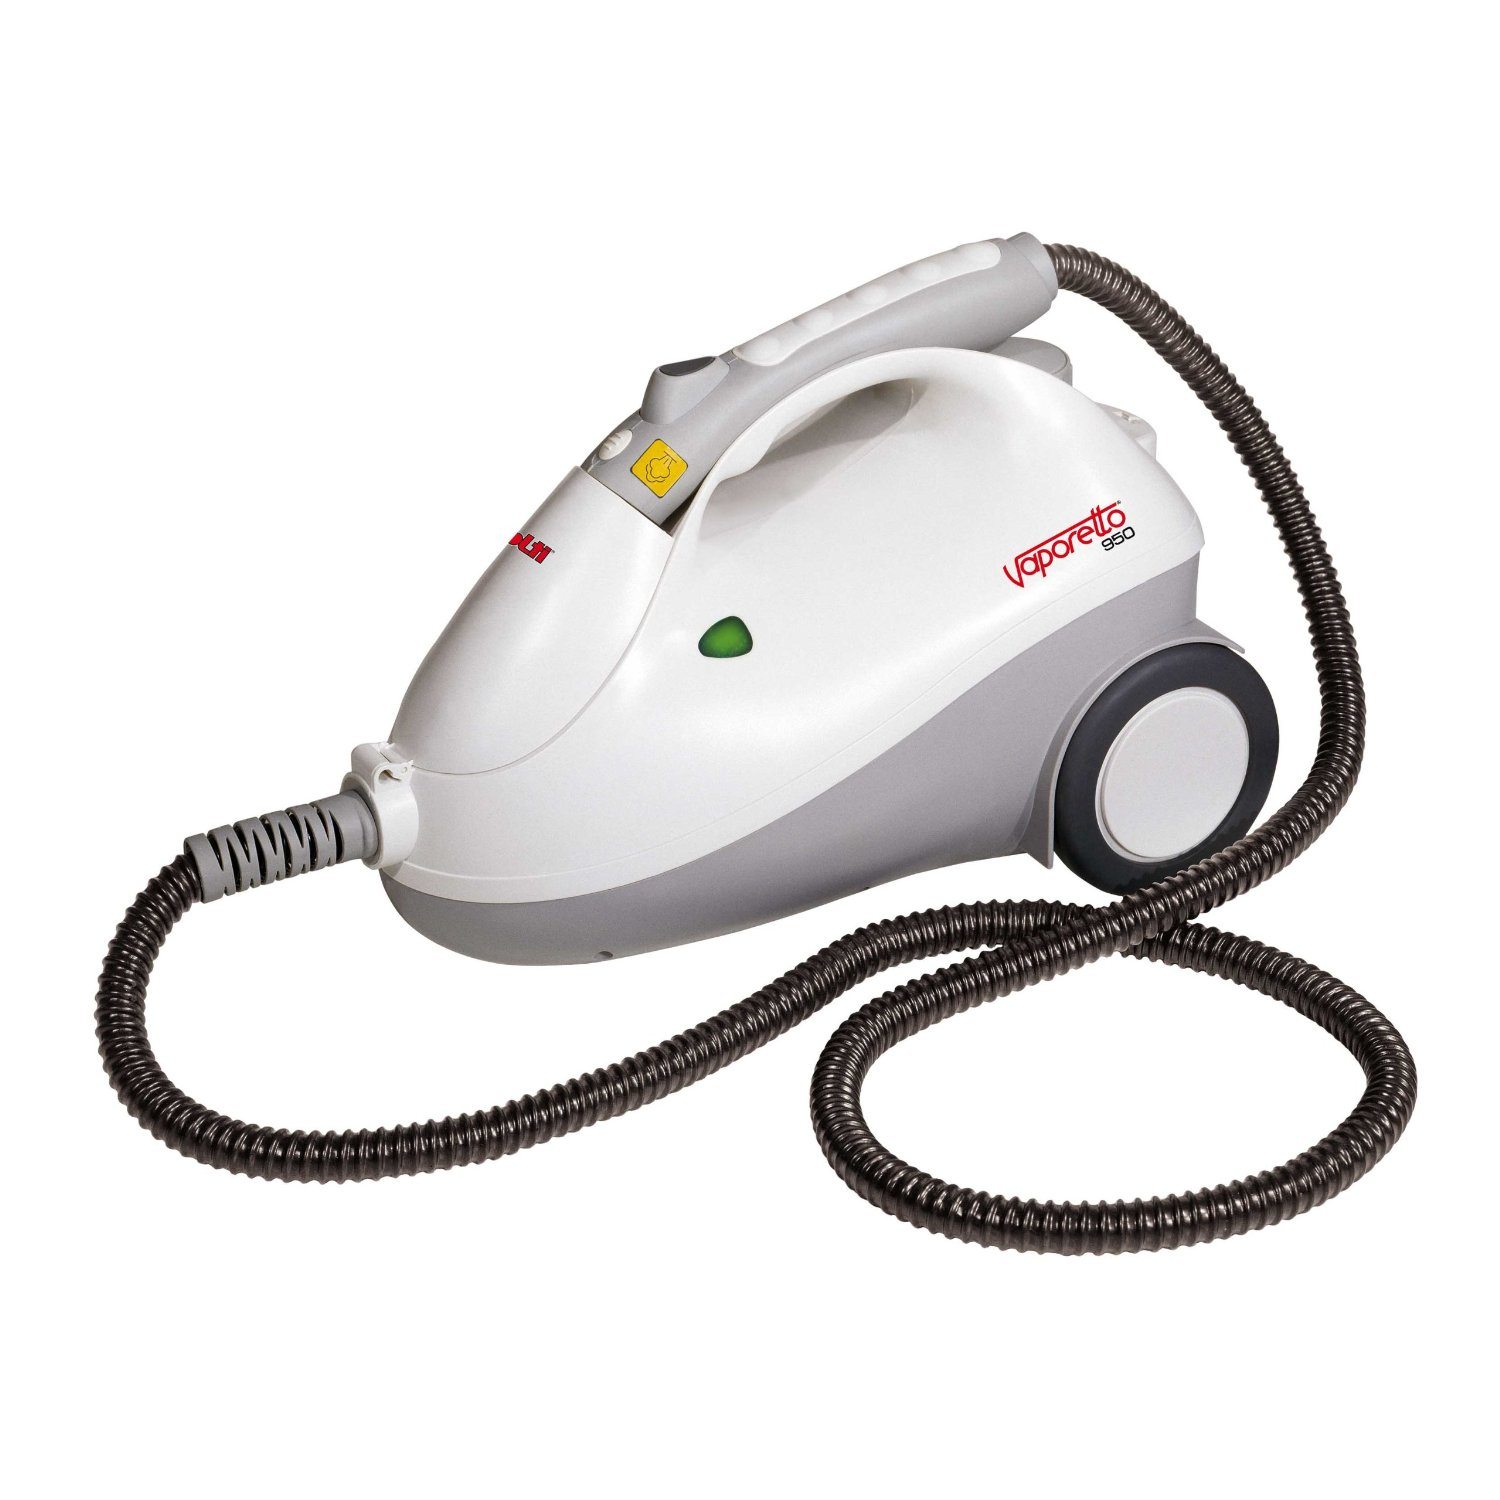 Polti ptgb0026 vaporetto 950 steam cleaner machine for for Vaporetto polti